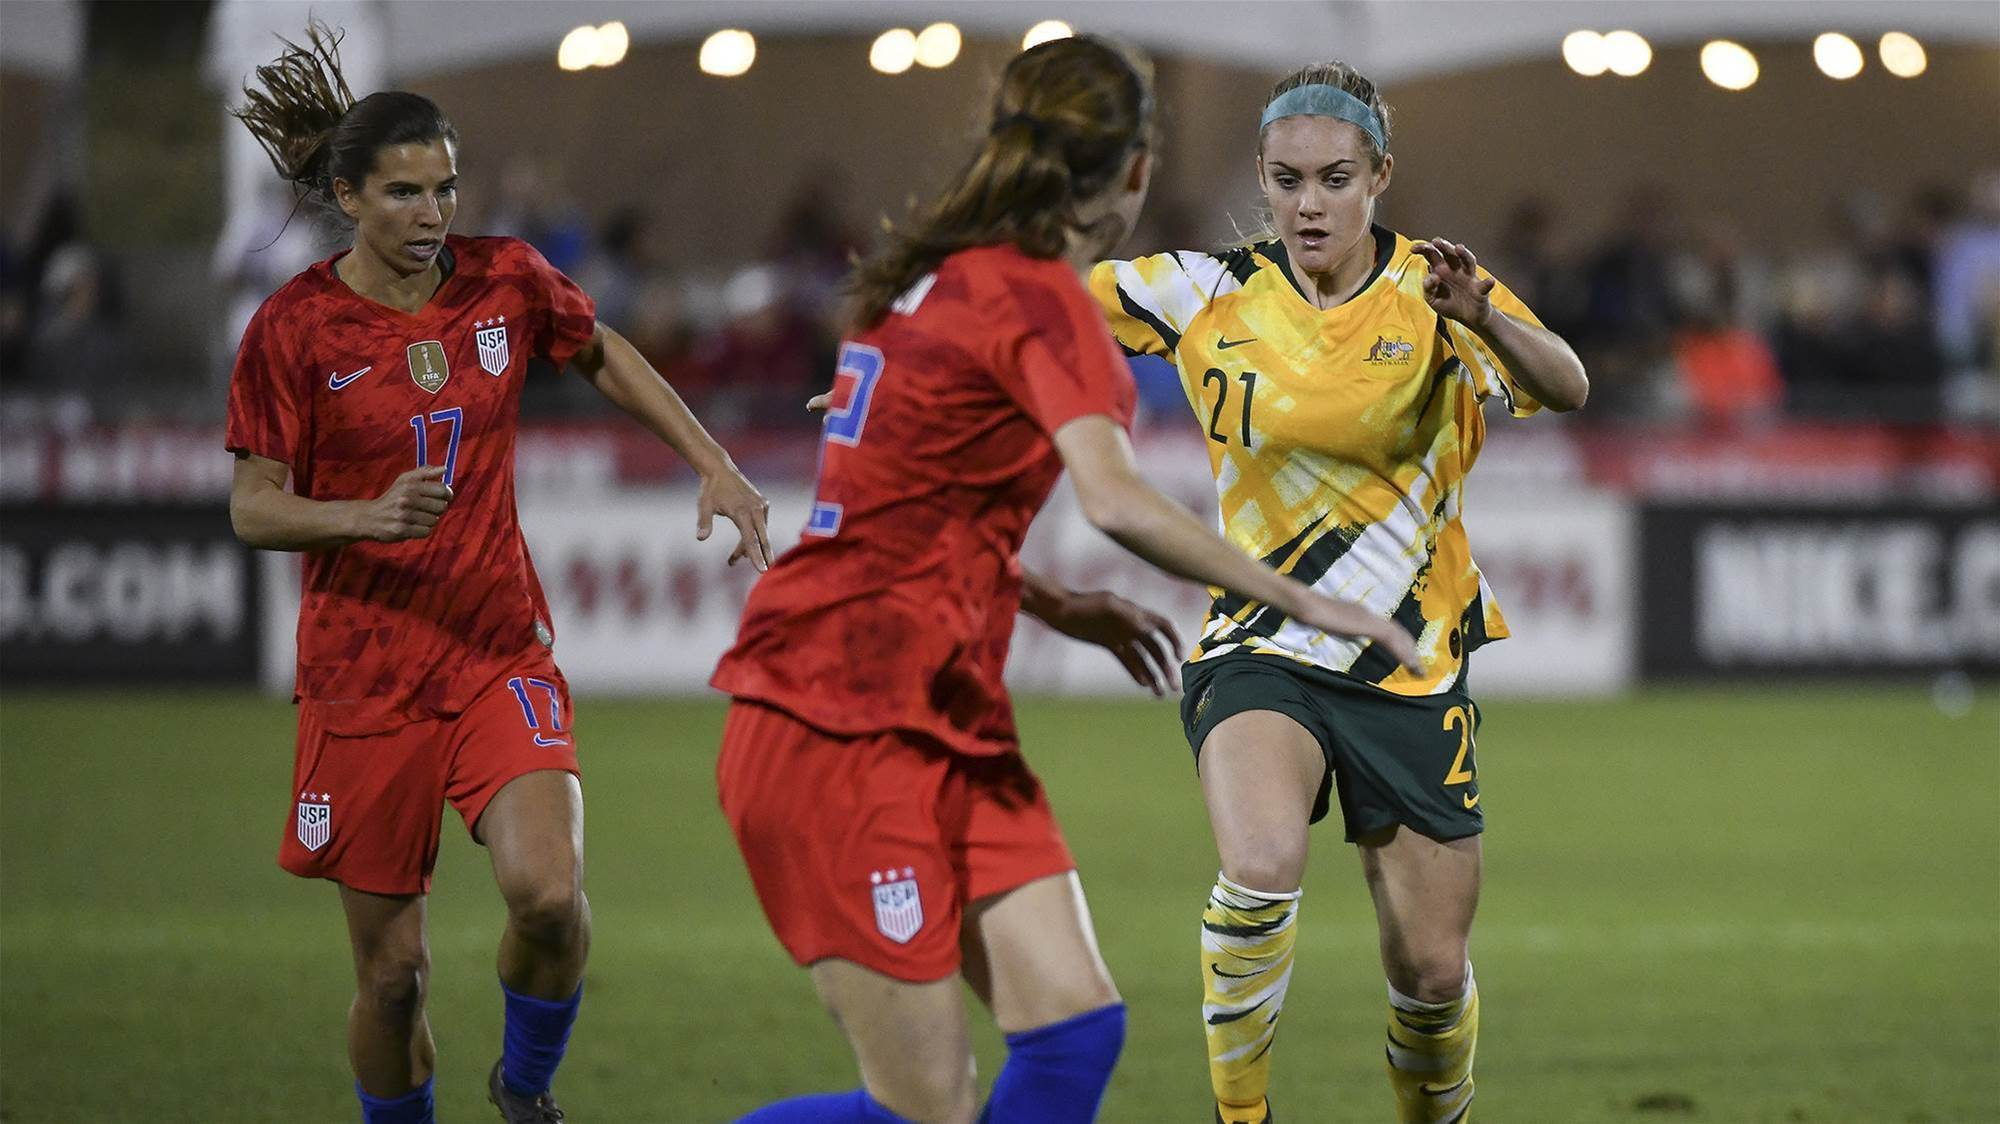 Sacrifices to follow Matildas dream